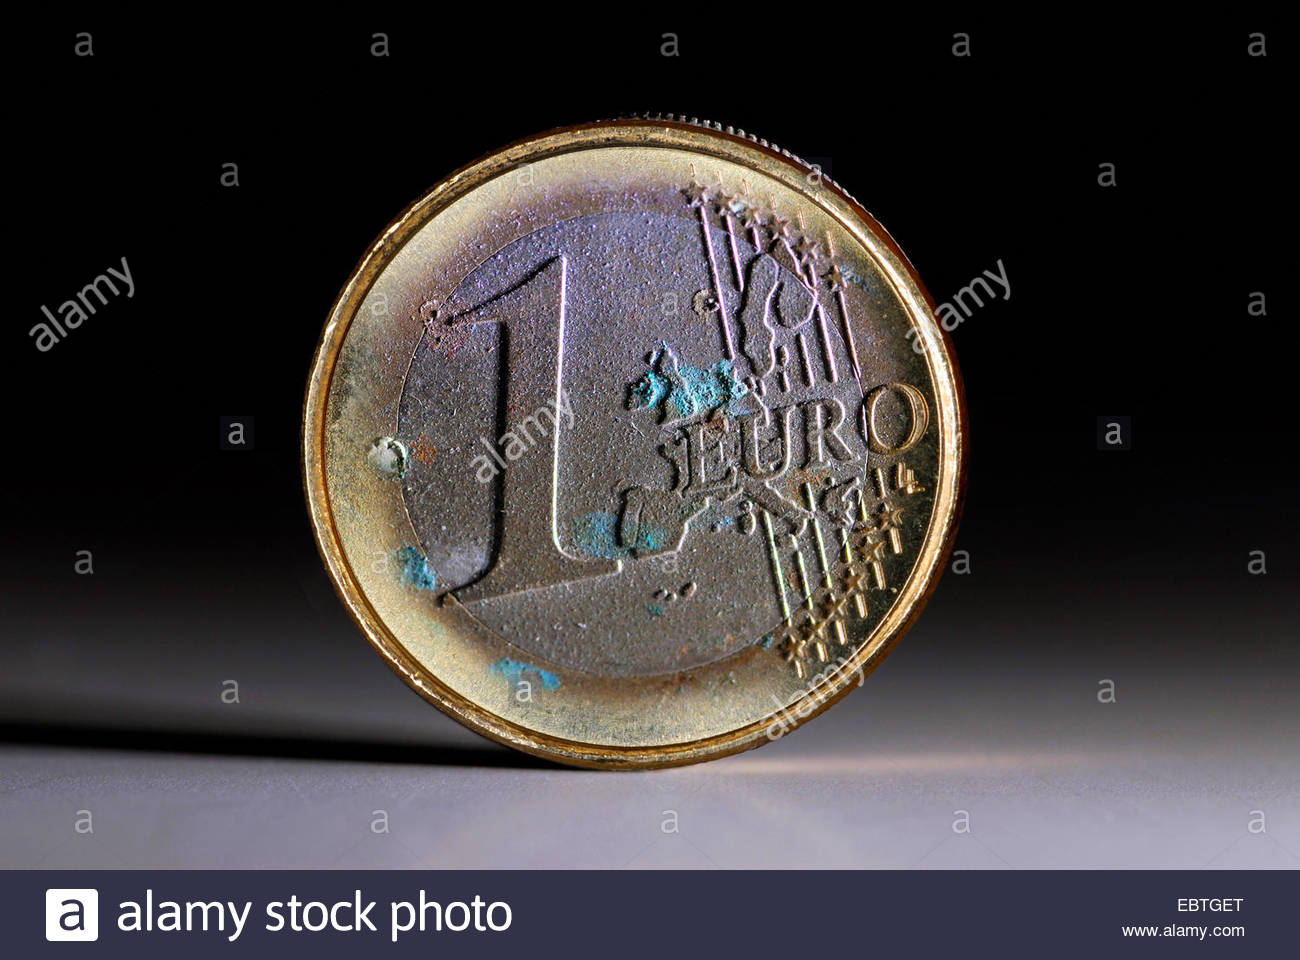 moulded euro coin - Stock Image